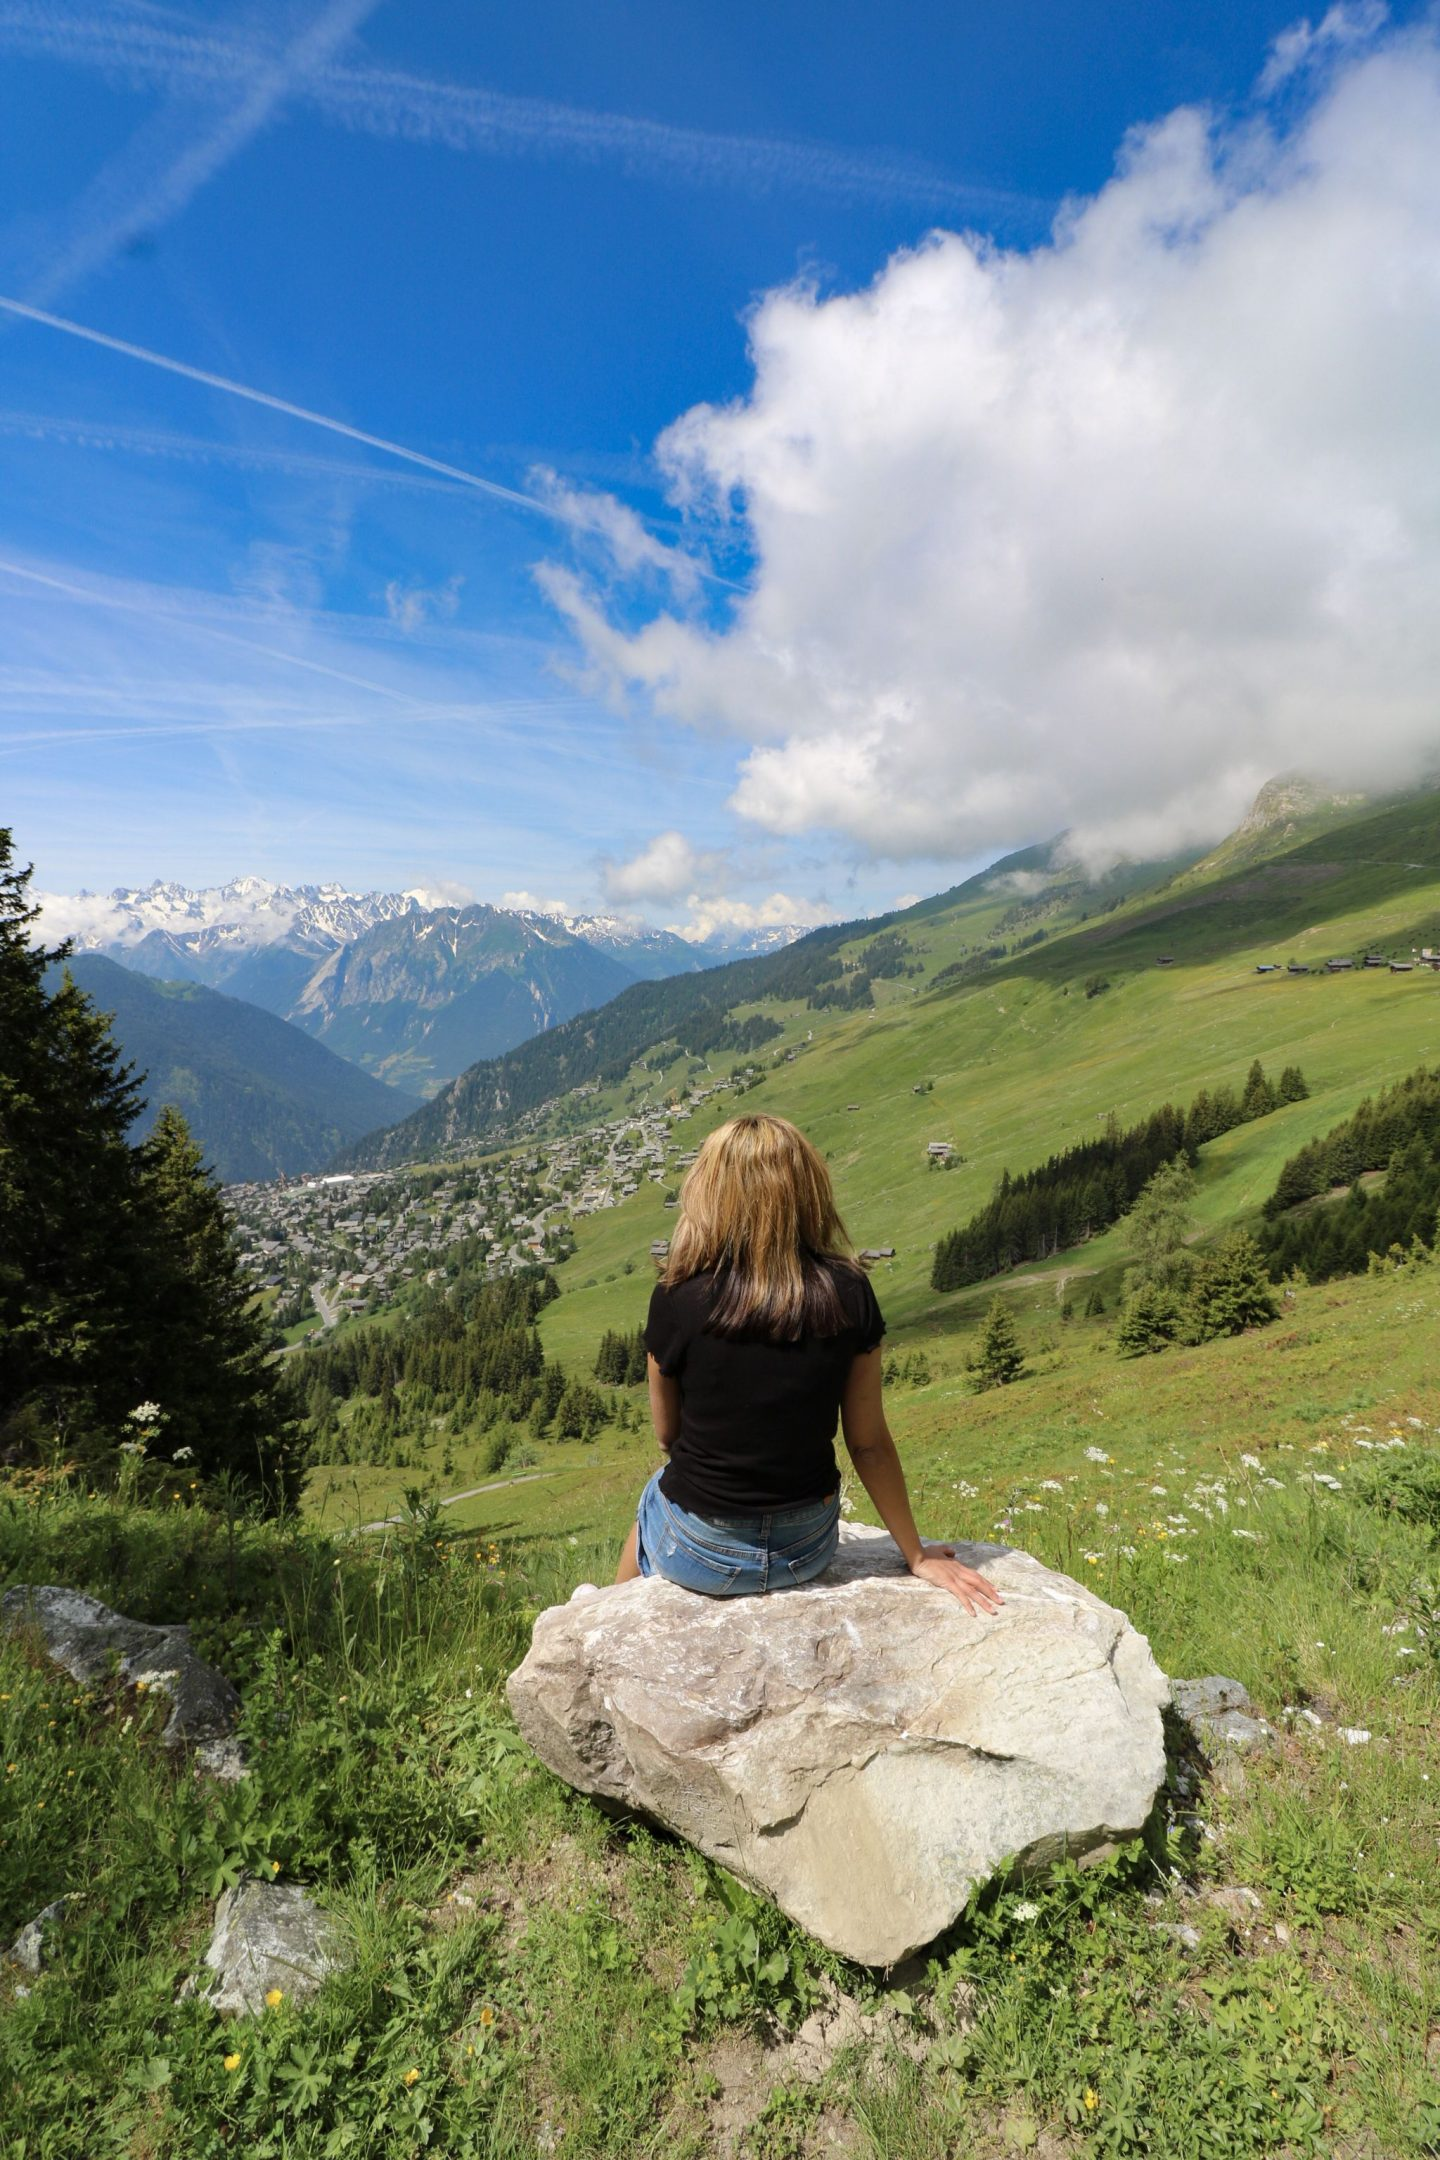 10 reasons why an Alpine summer holiday in Verbier should be next on your travel wish list